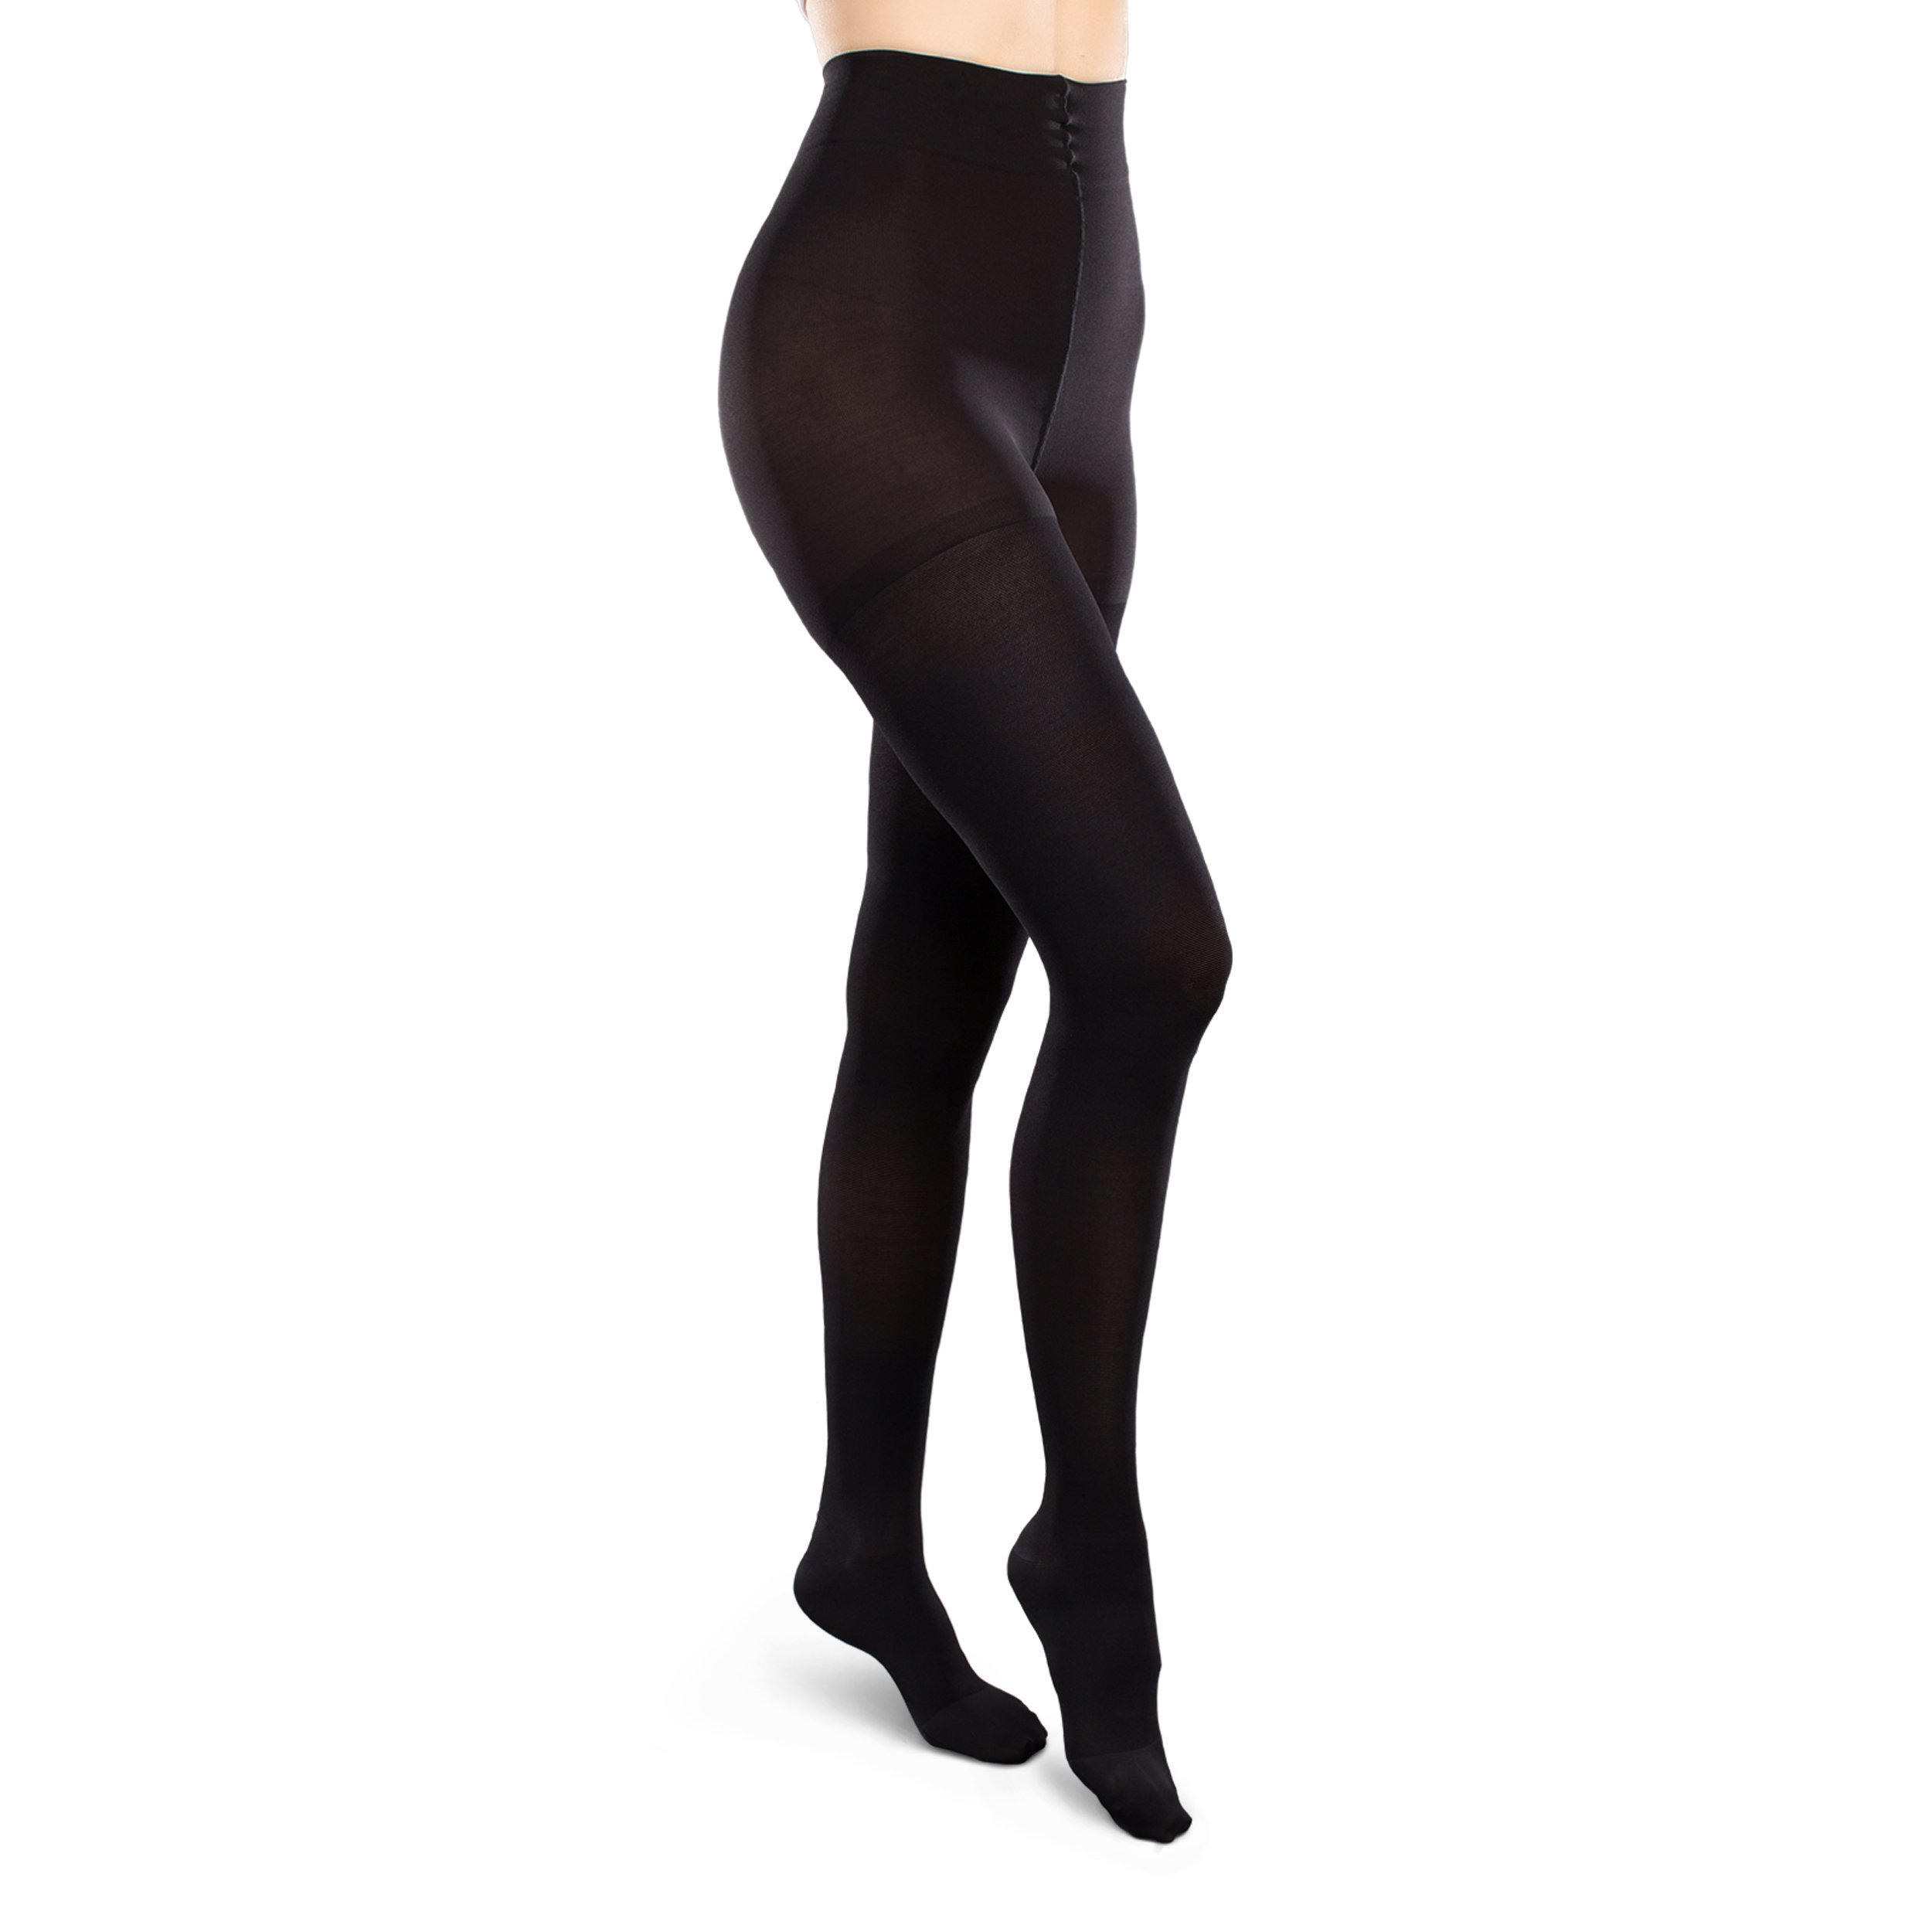 Therafirm Opaque Women's Support Pantyhose - Firm (30-40mmHg) Graduated Compression Hosiery (Black, Large Short)